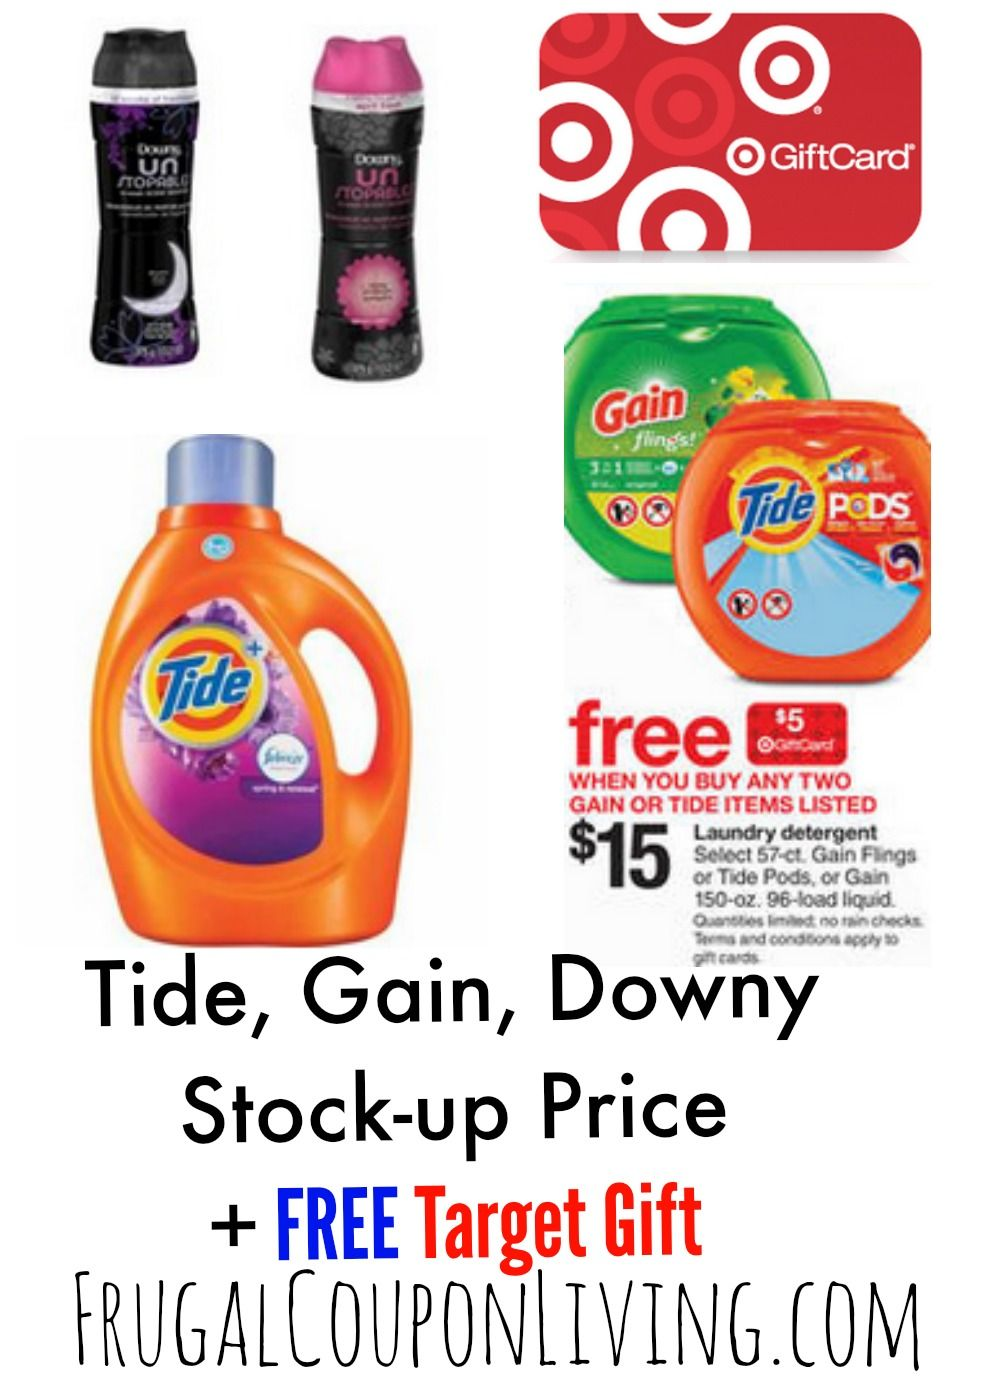 Target Laundry Detergent Deals Tide Downy Printable Coupons Rare Stock Up Price Tide Coupons Tide Laundry Detergent Free Printable Coupons